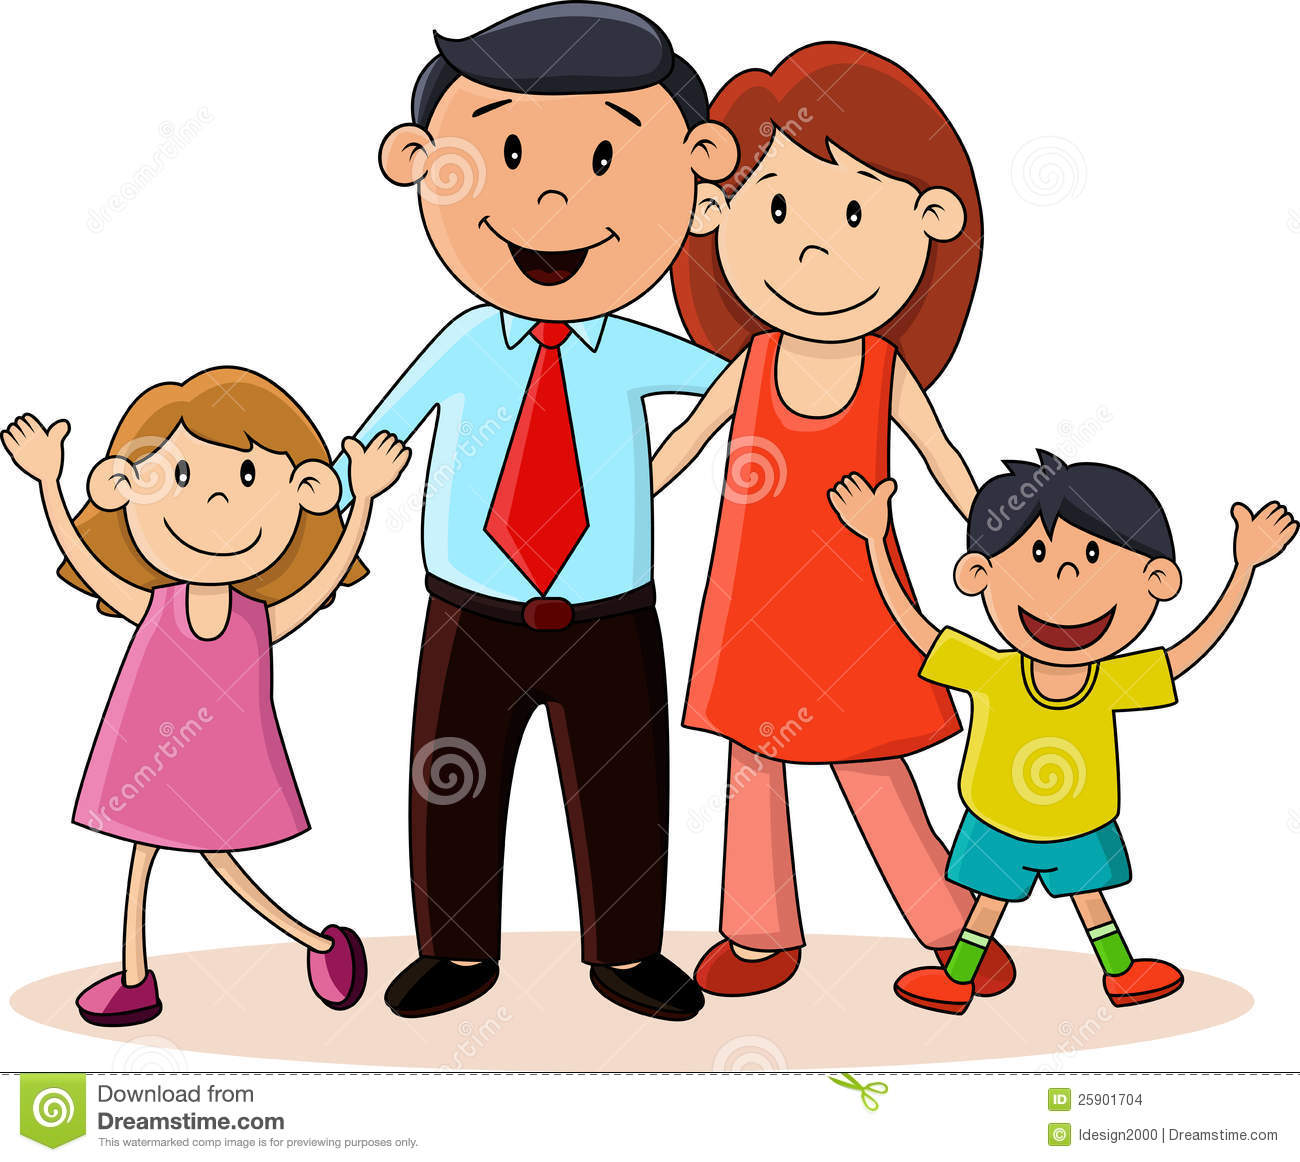 Stock Images: Happy family. Image: 25901704